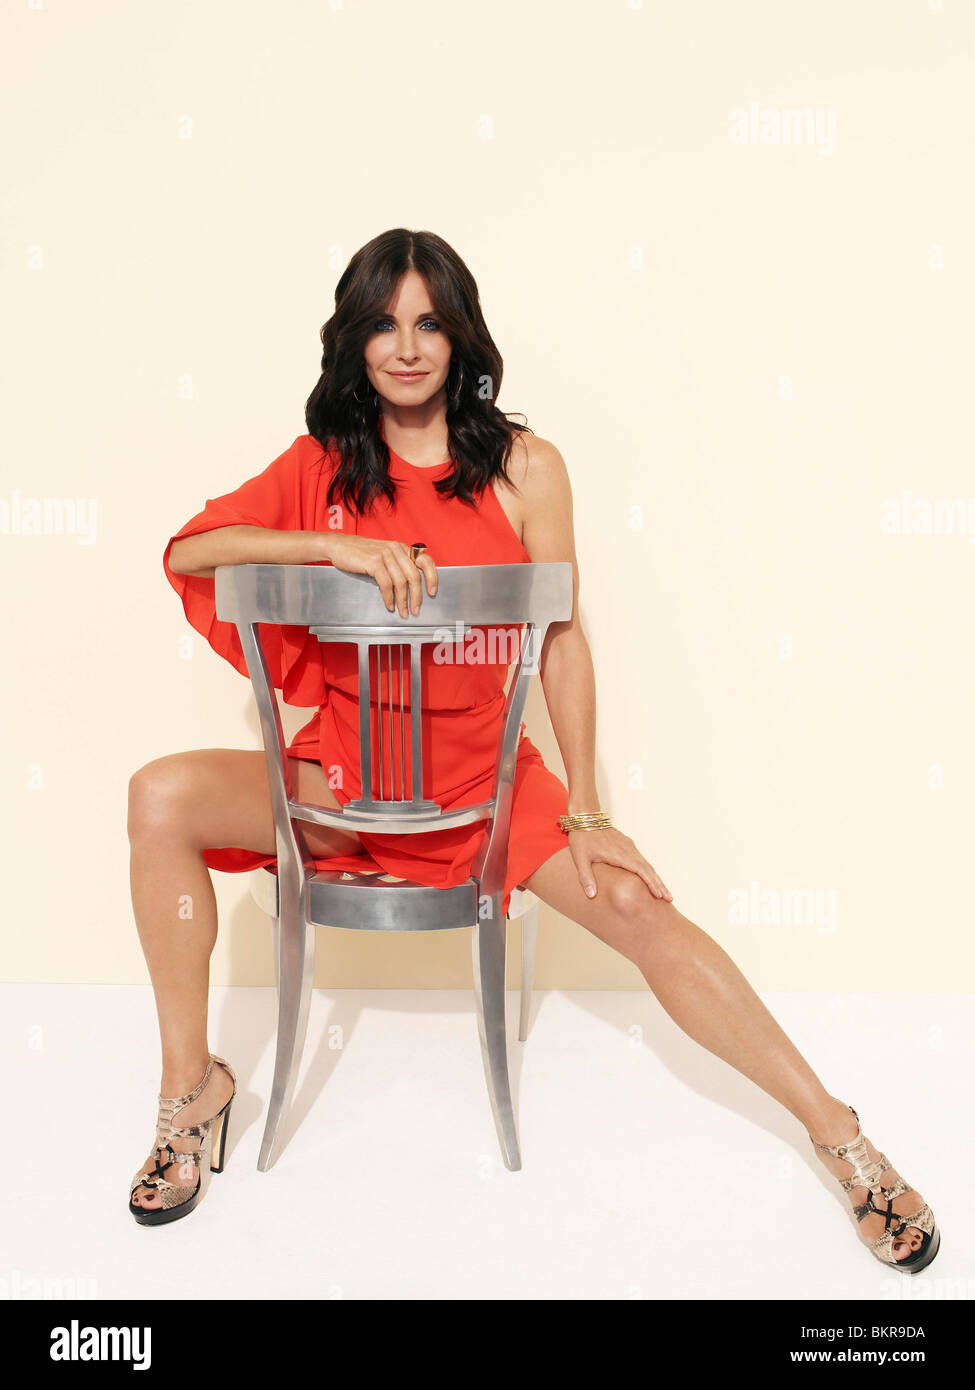 COUGAR TOWN (TV) -2009 COURTENEY COX - Stock Image